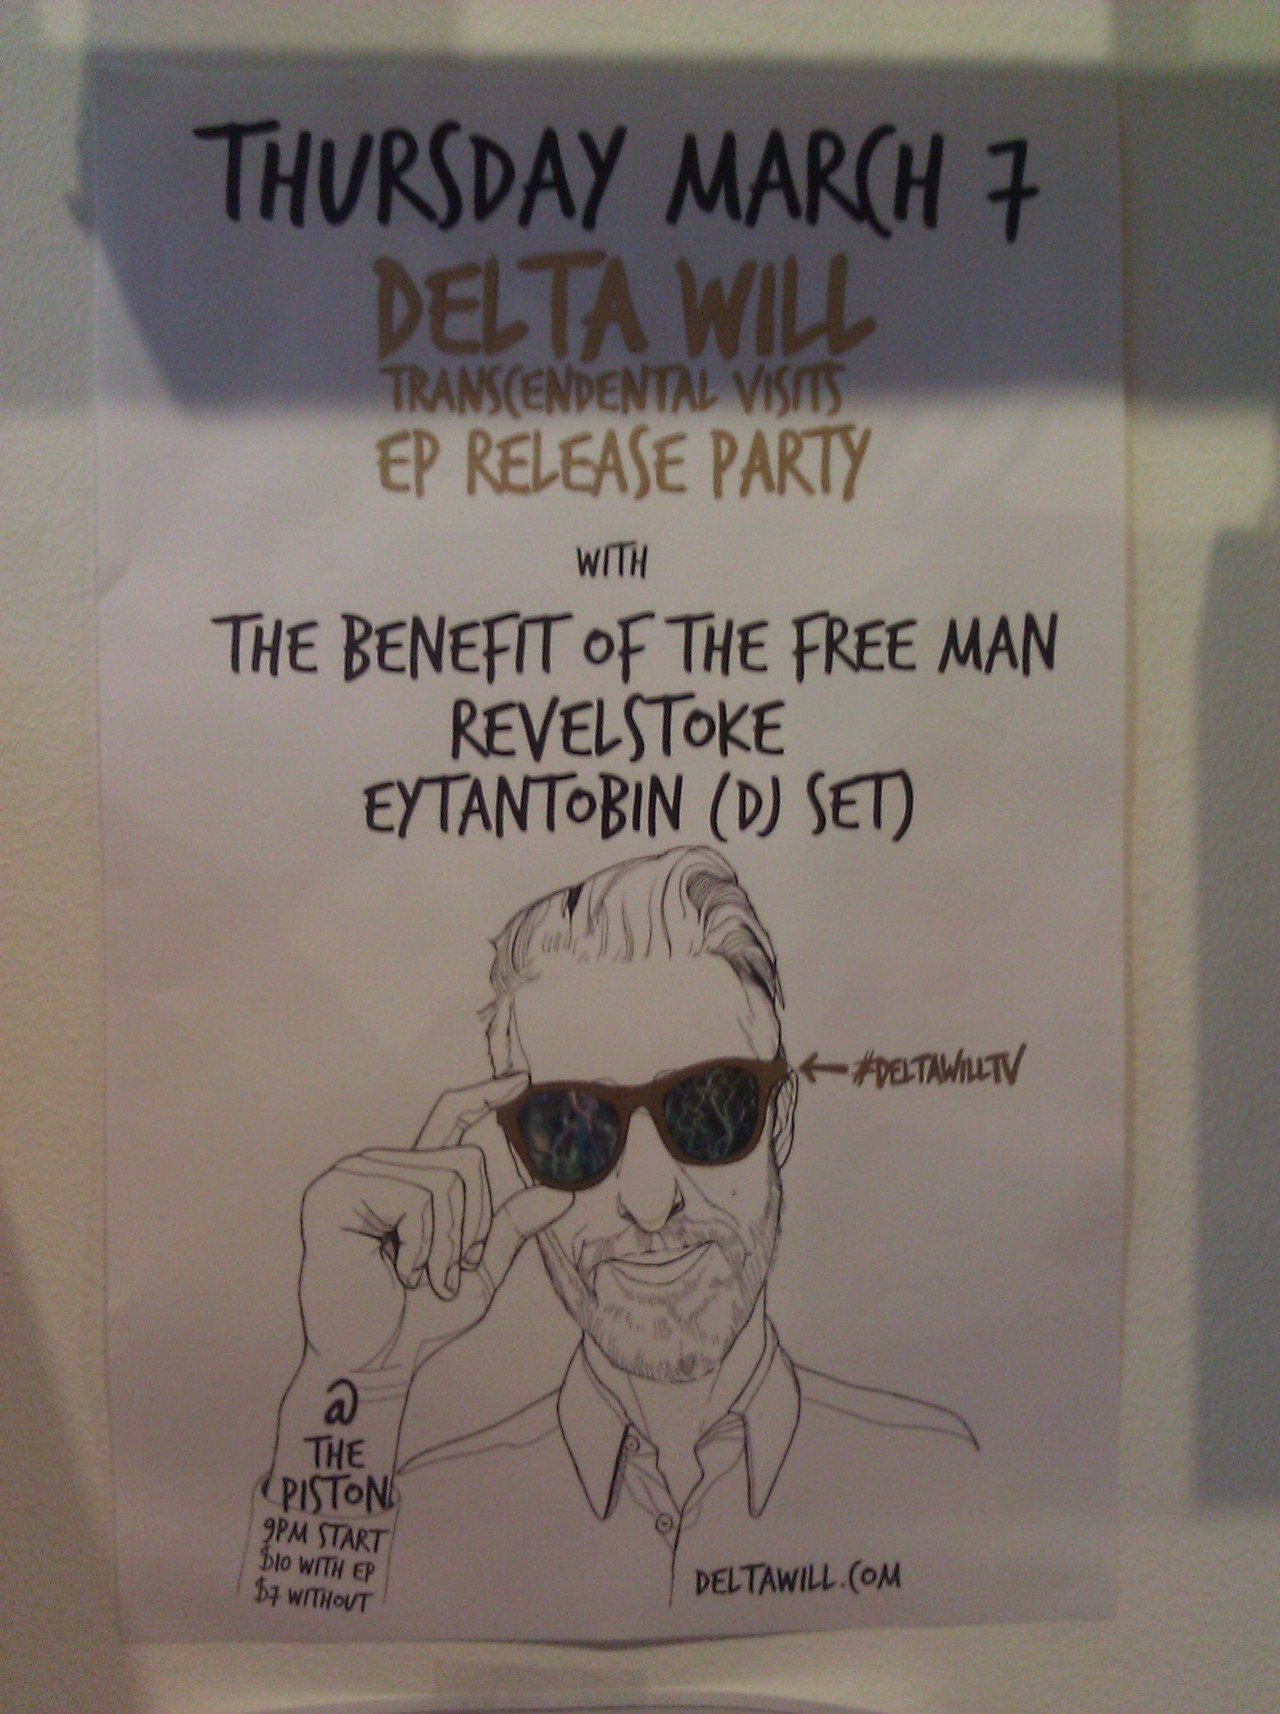 Delta Will on March 7 at The Piston